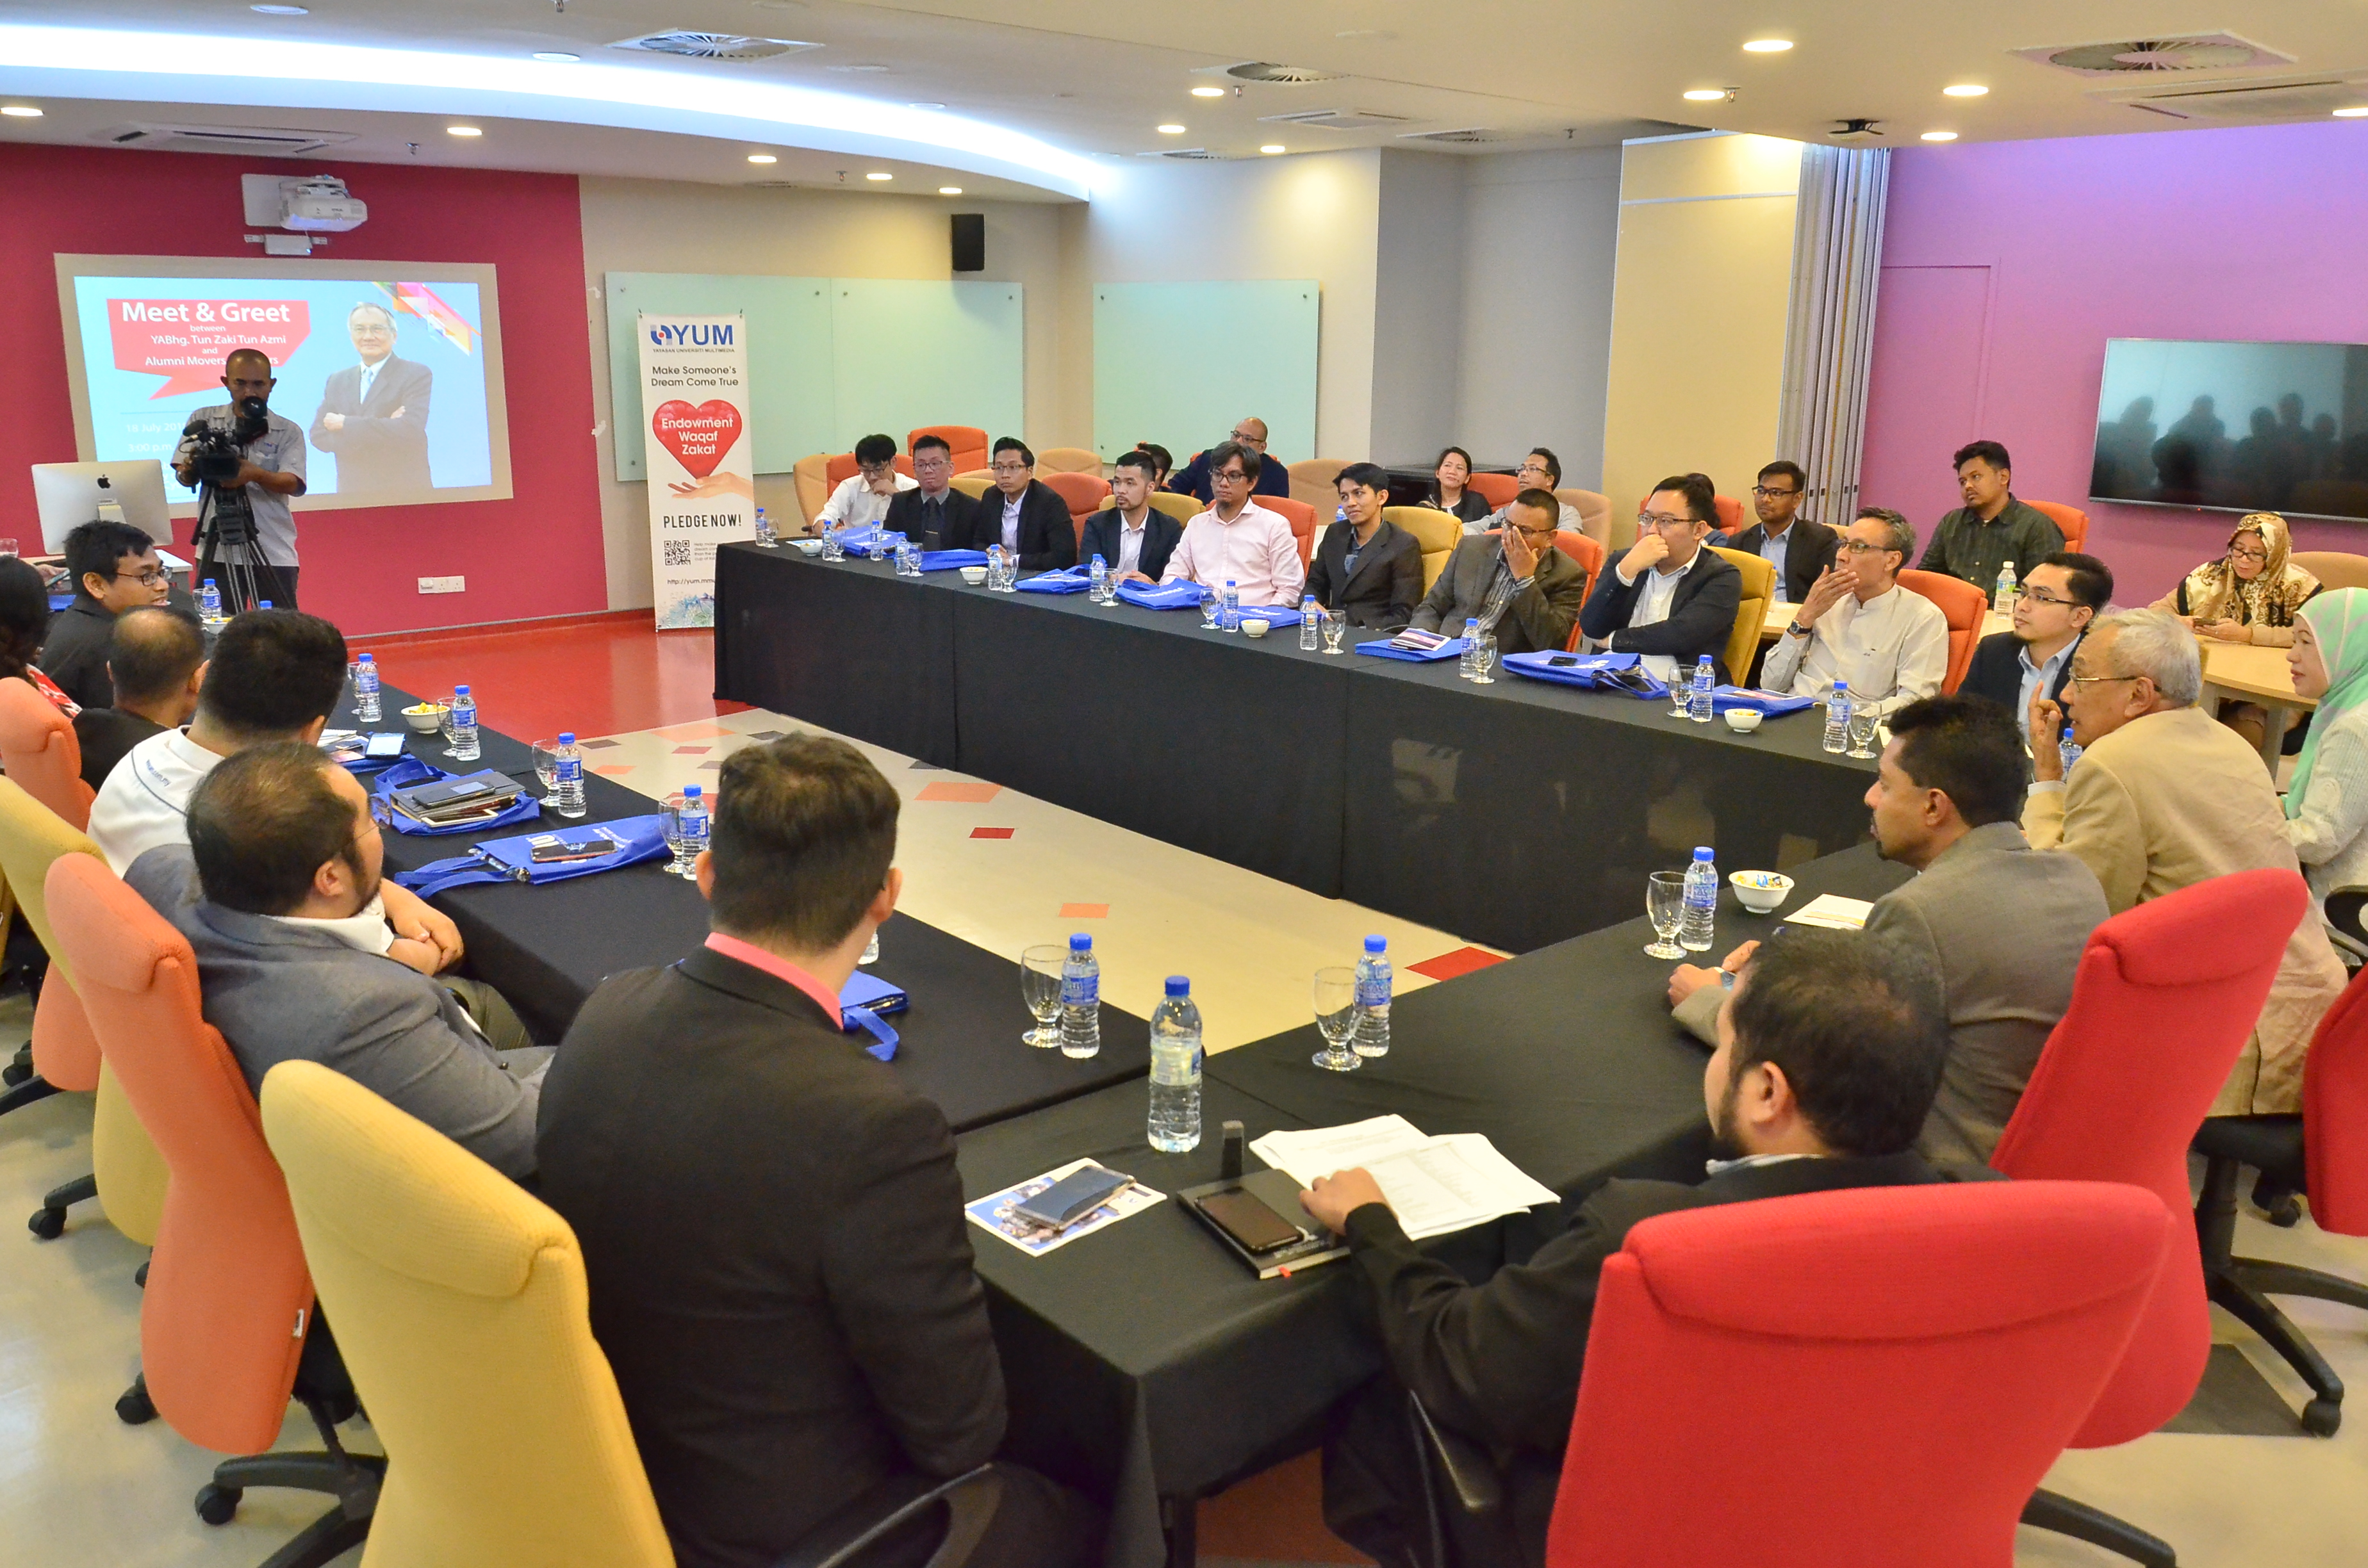 Multimedia university mmu chancellor exchanges ideas with alumni on 18 july 2018 mmu chancellor tun zaki tun azmi met up personally with a group of 40 alumni in a session of meet and greet between yabhg m4hsunfo